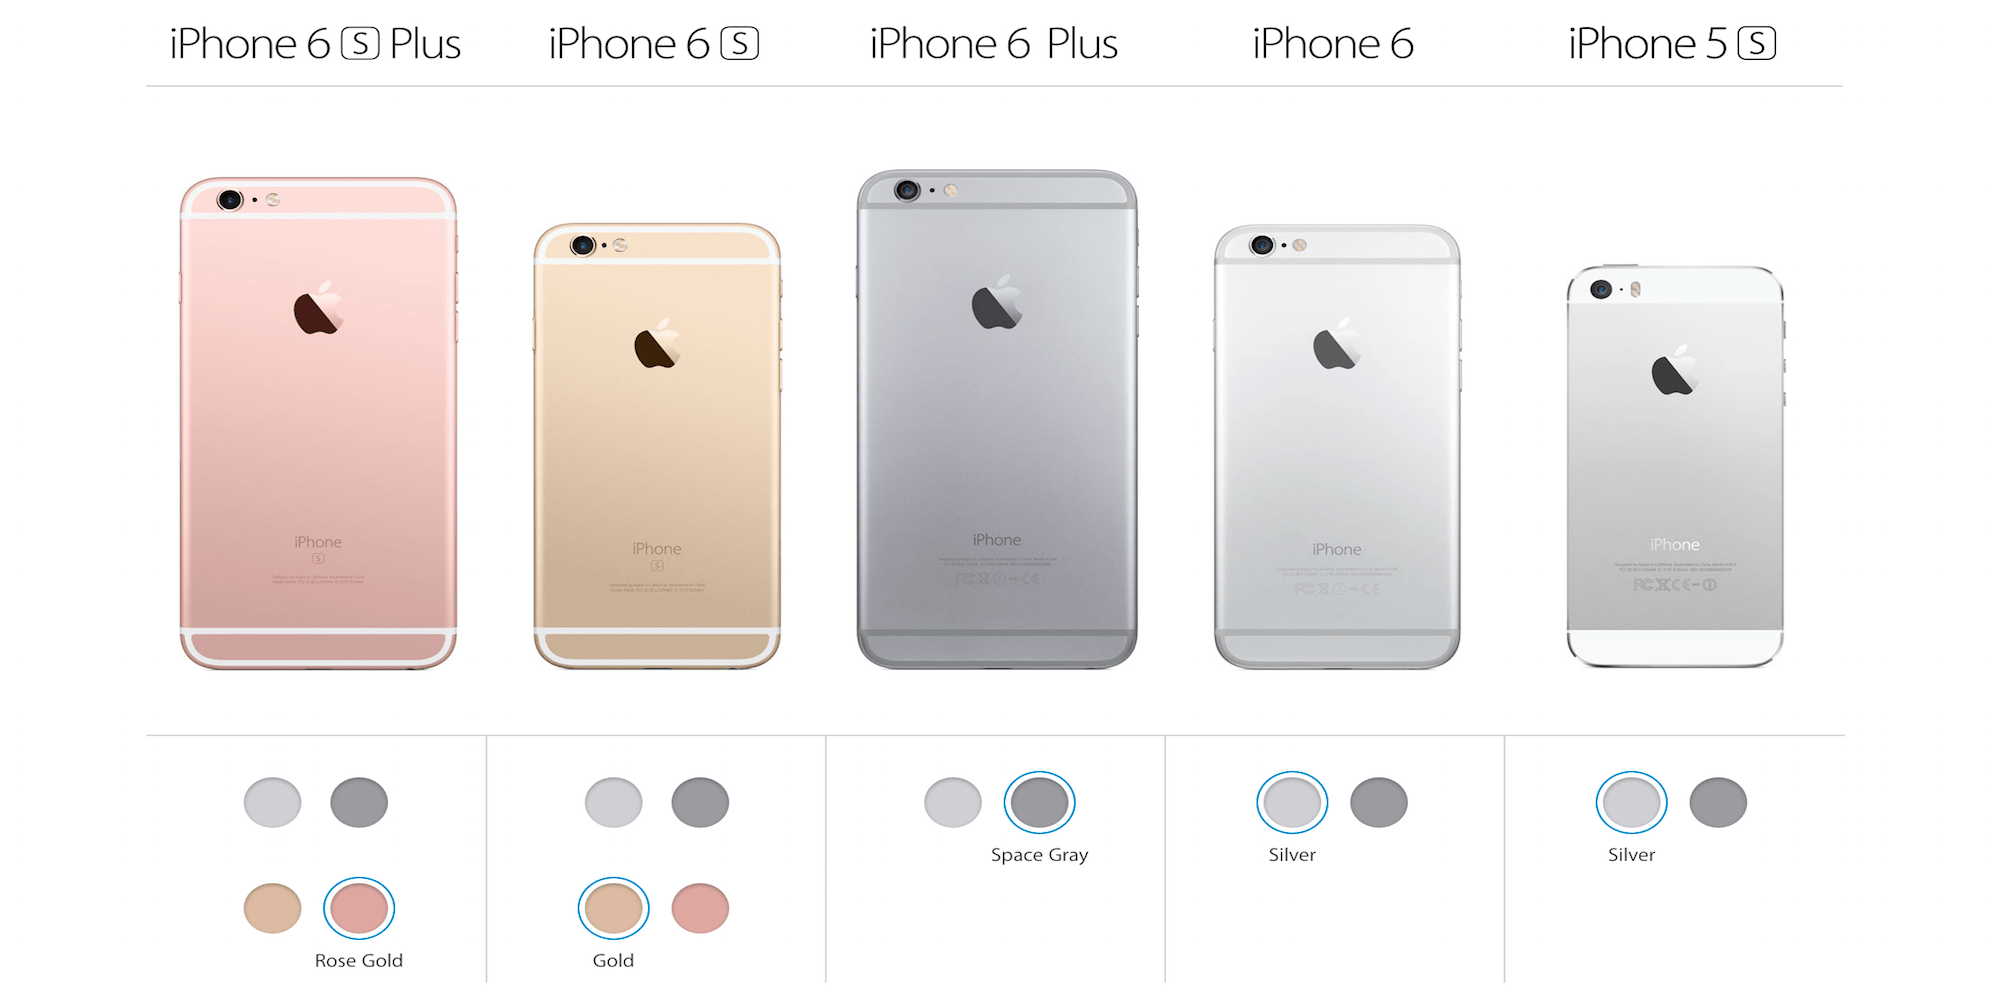 Iphone 6s 16gb color rose gold